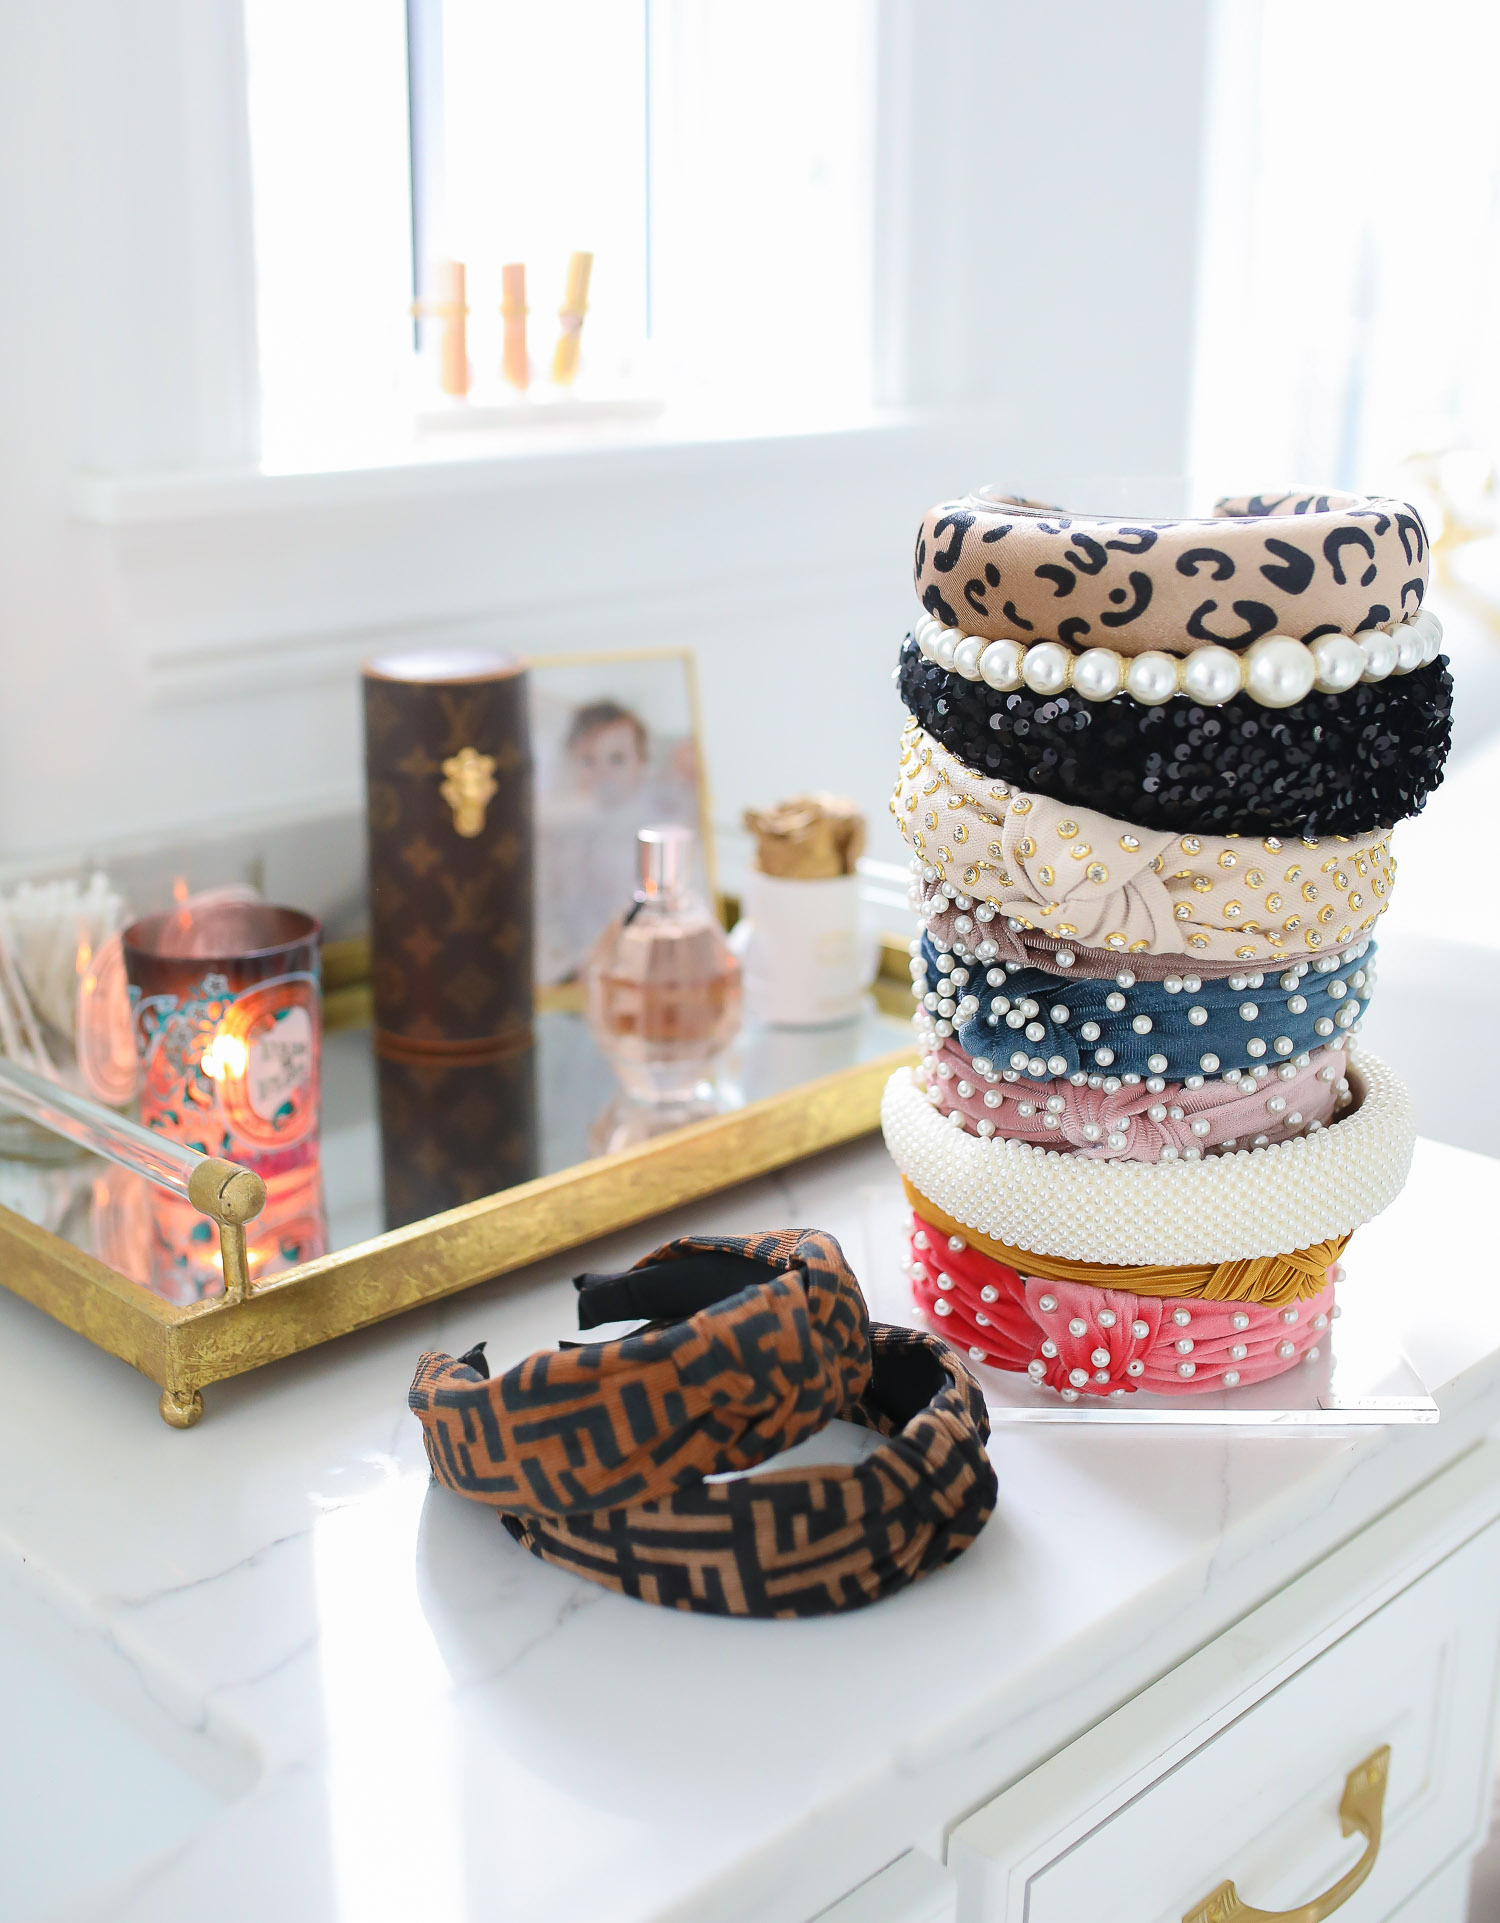 fendi dupe headbands, handband stand, swig marble cup insulated, top amazon must haves, amazon best buys 2020, emily gemma, amazon prime must haves blog post   Amazon Prime Favorites by popular US life and style blog, The Sweetest Thing: image of various Amazon Prime headbands.